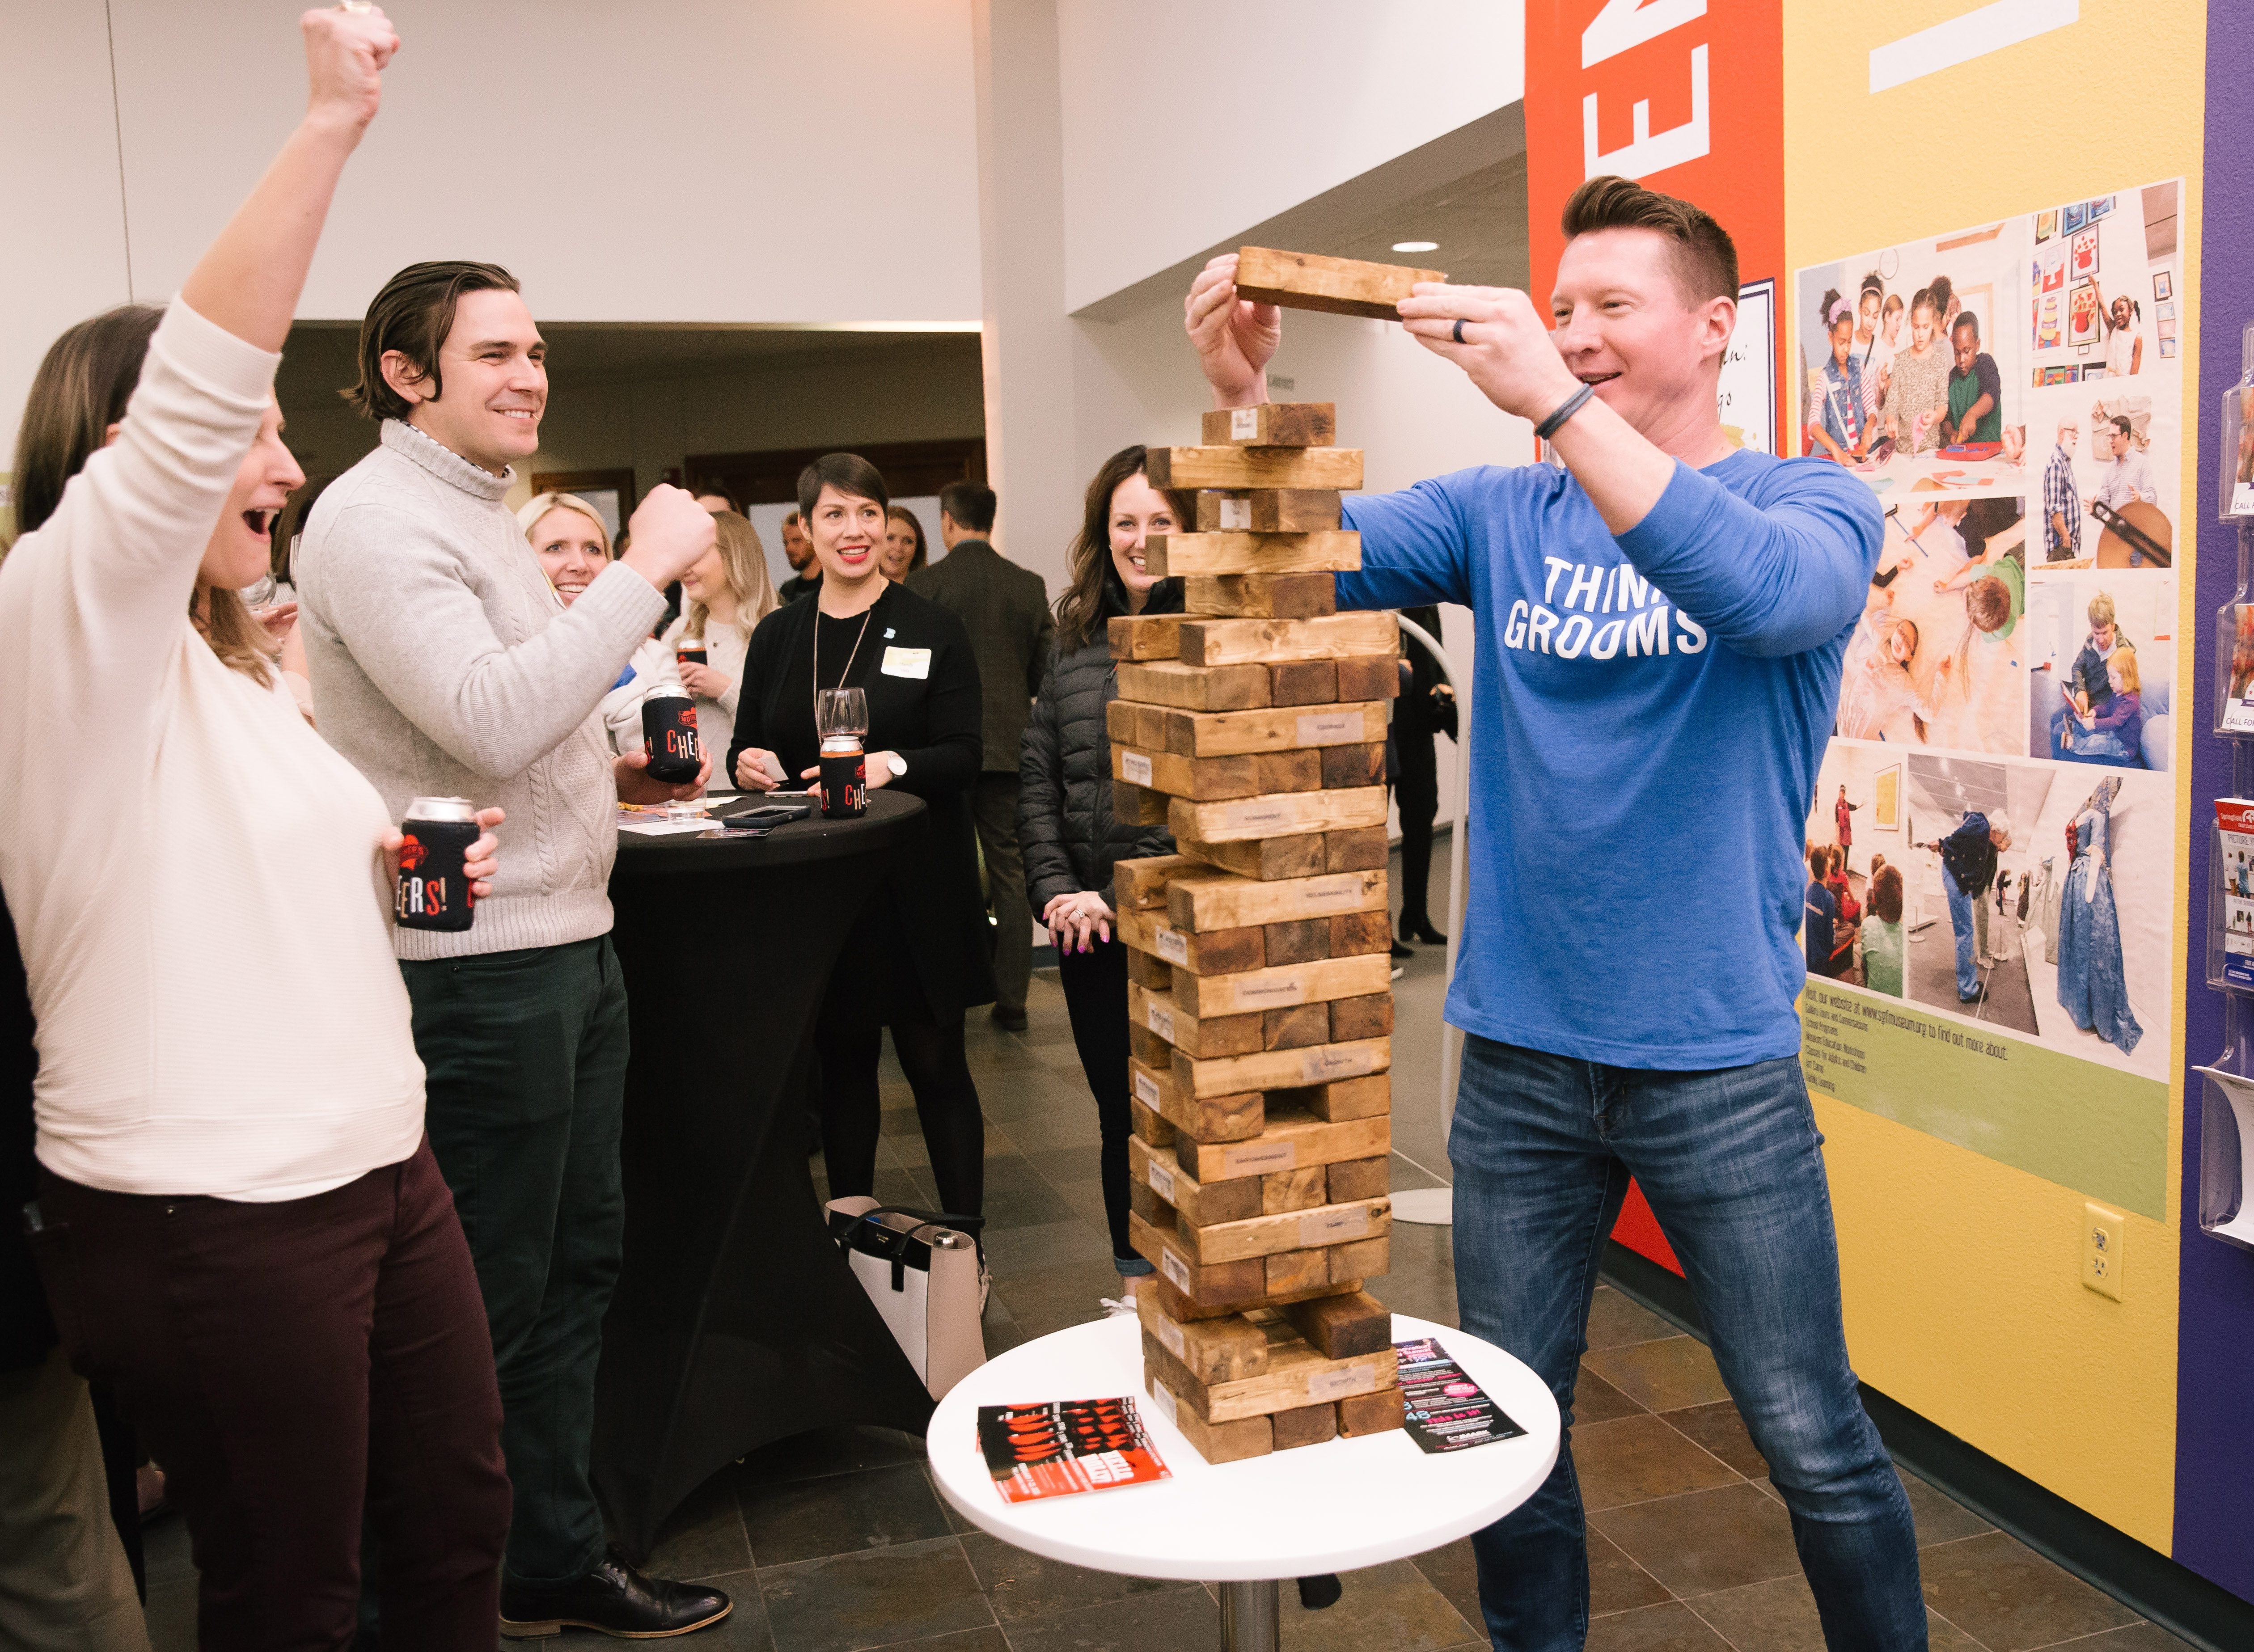 Jonathan Garard playing Jenga